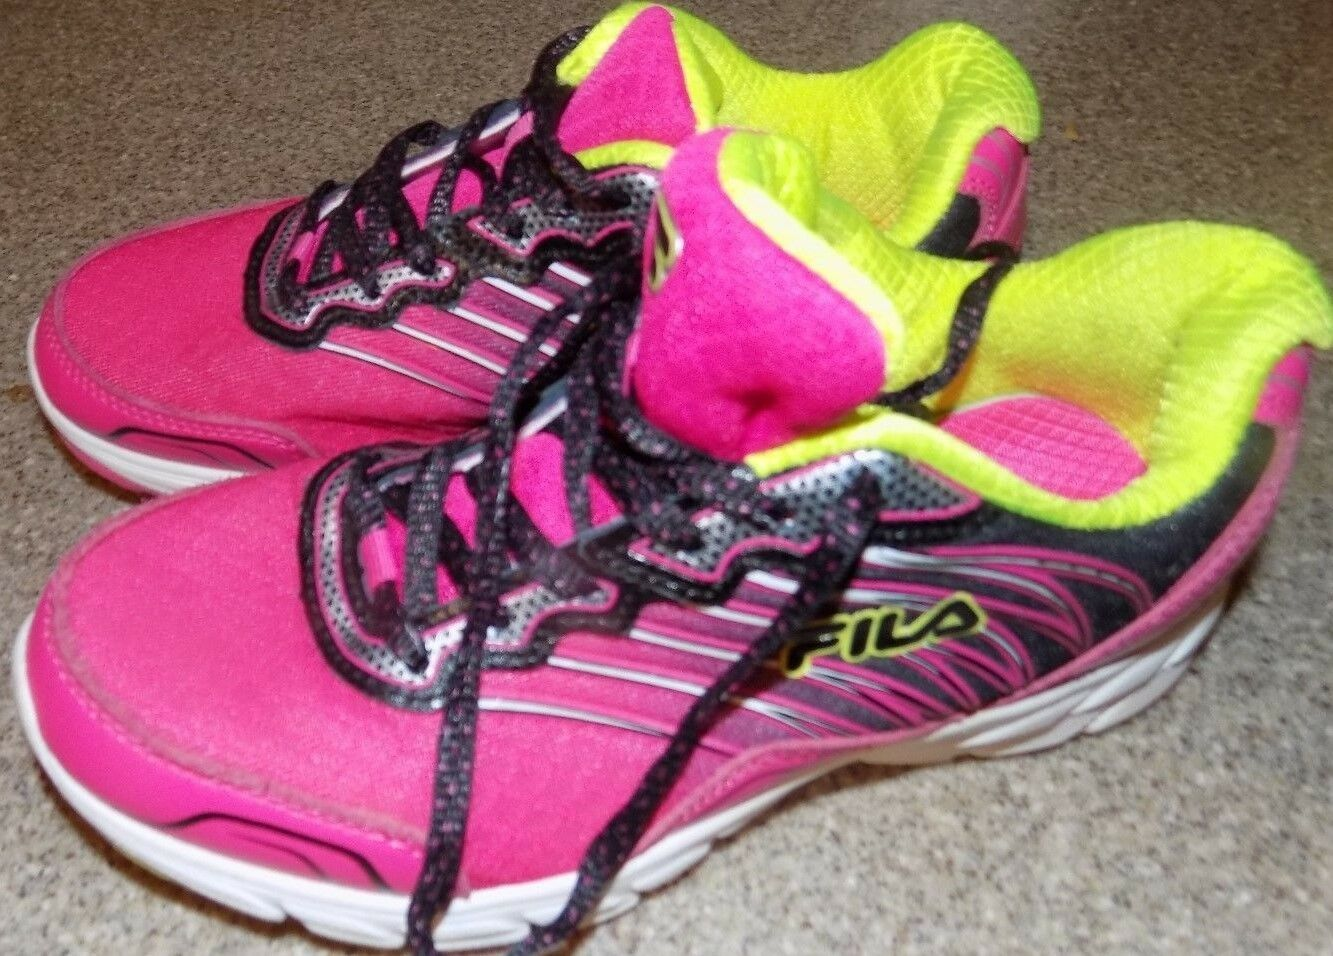 FILA WOMENS SIZE 3 PINK AND YELLOW Comfortable and good-looking